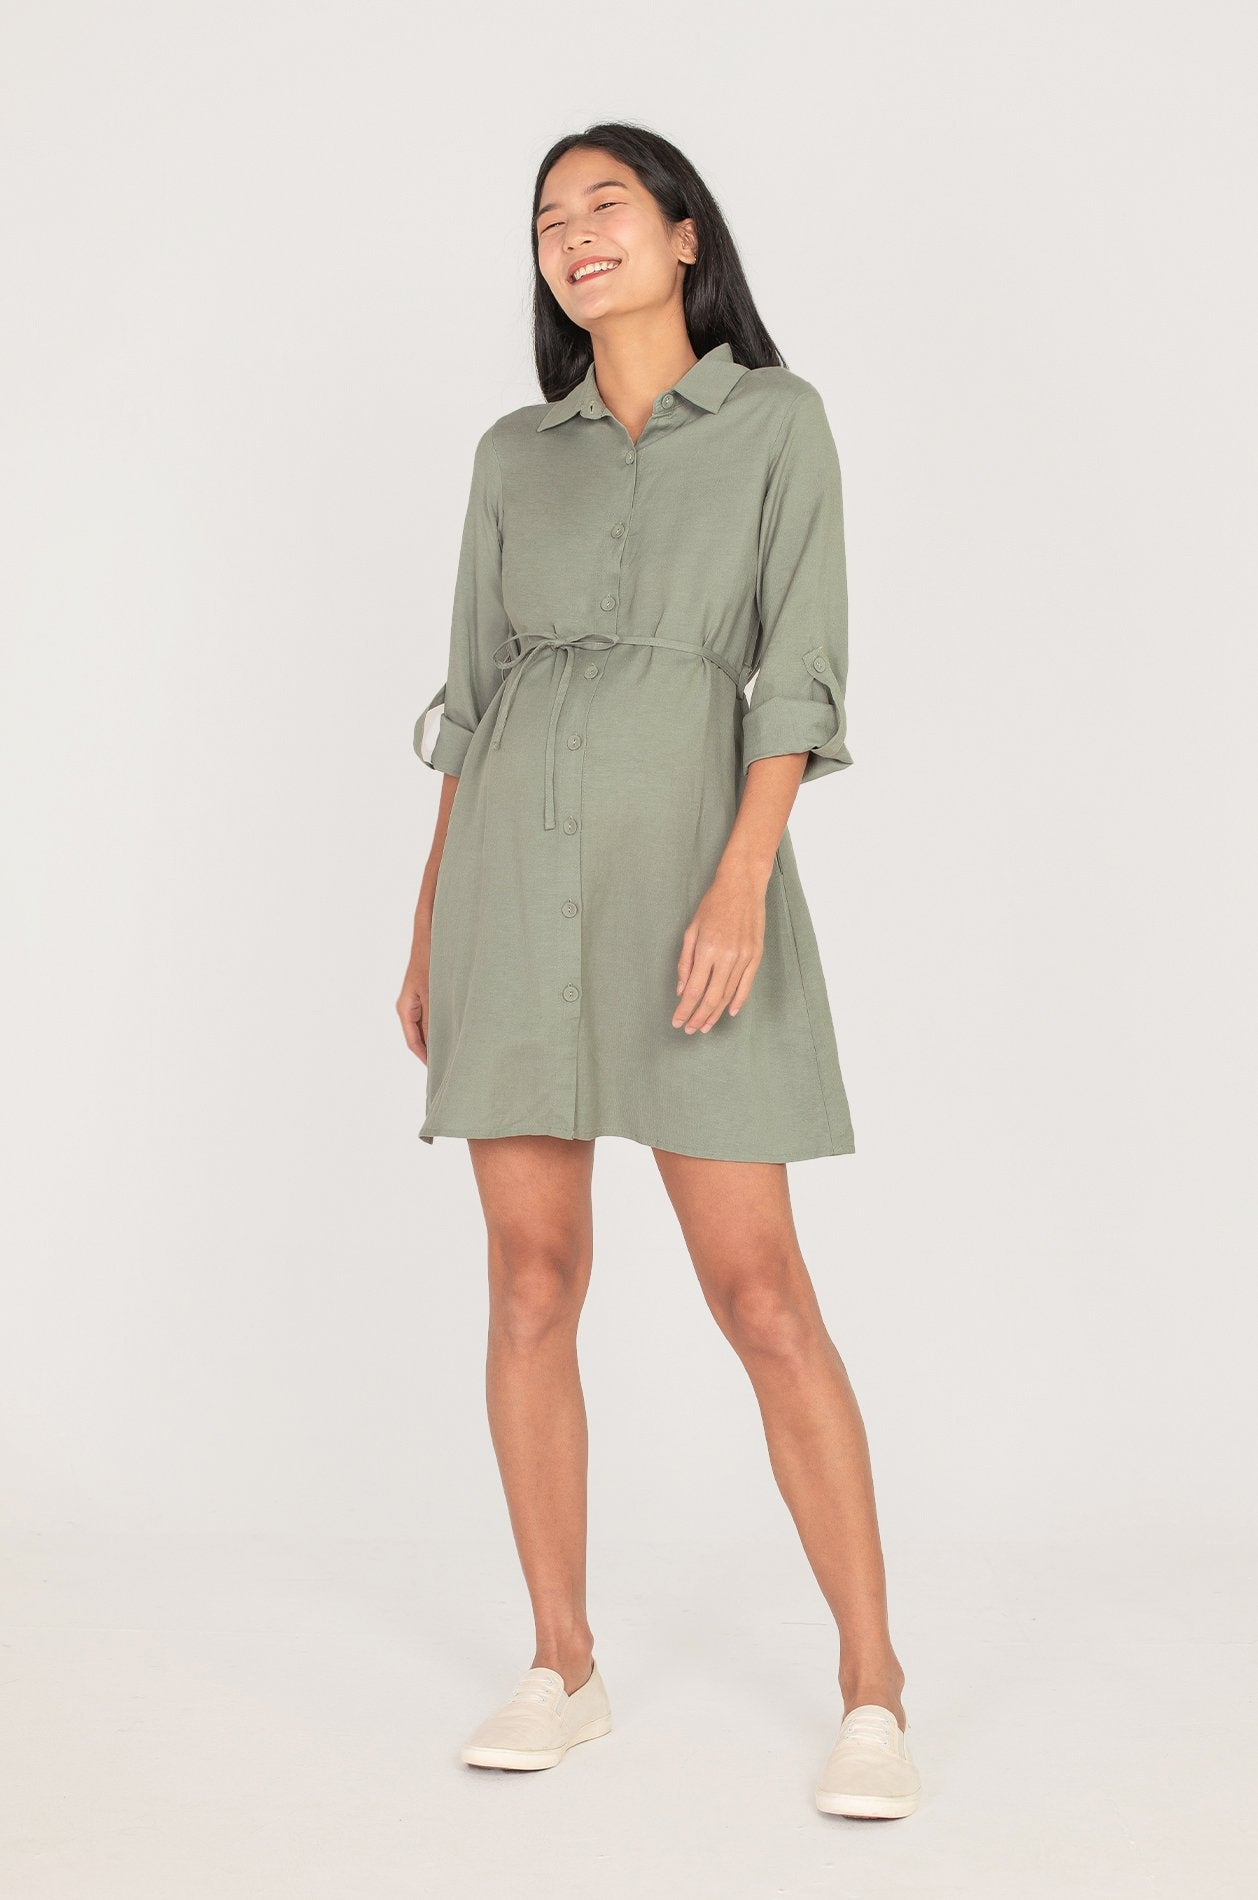 Cory Button Down Nursing Dress In Sage Nursing Wear Jump Eat Cry